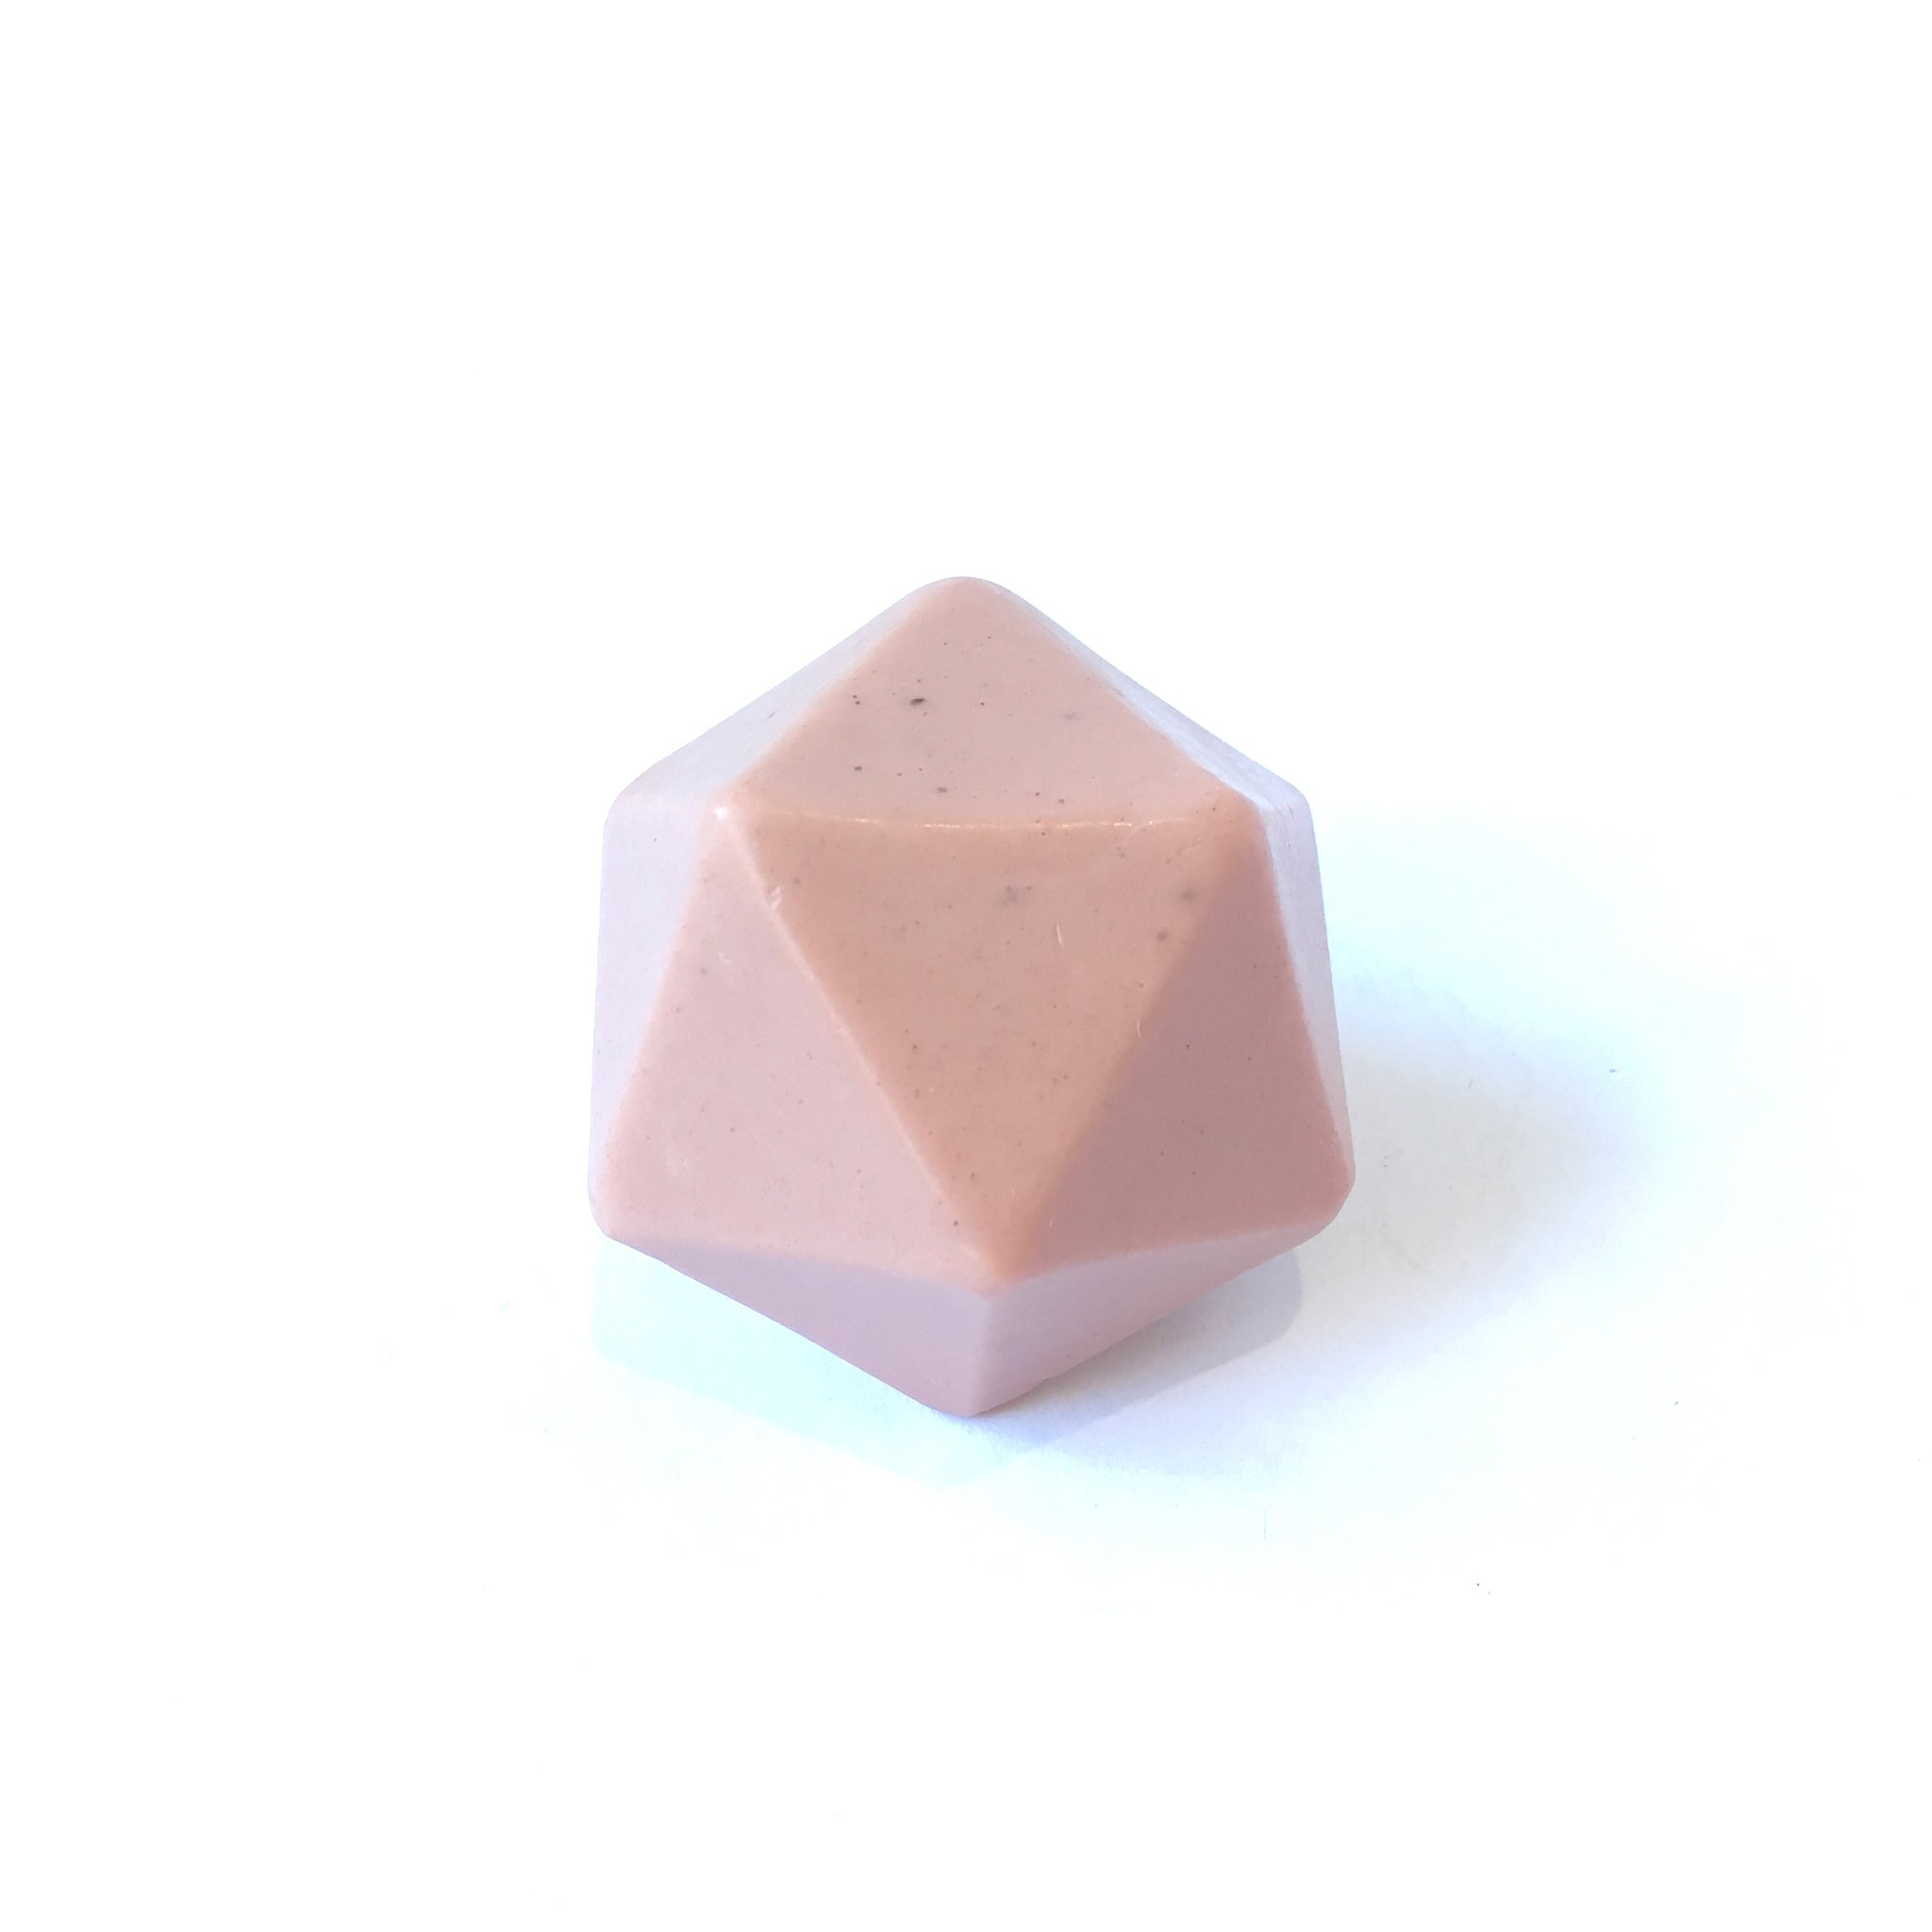 Architectural PRISM Pink Clay - 'Octo' Soap